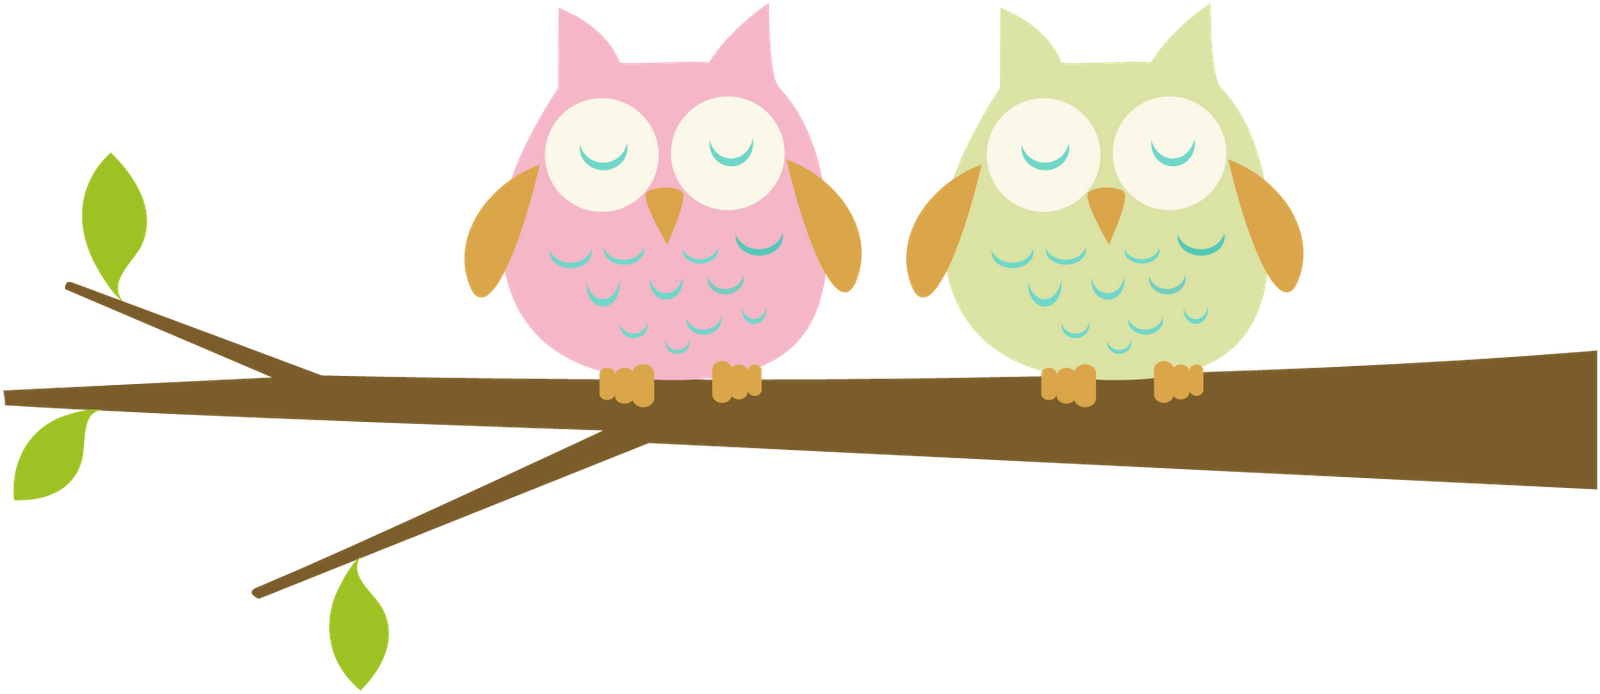 Banners clipart bird. Free owl water cliparts